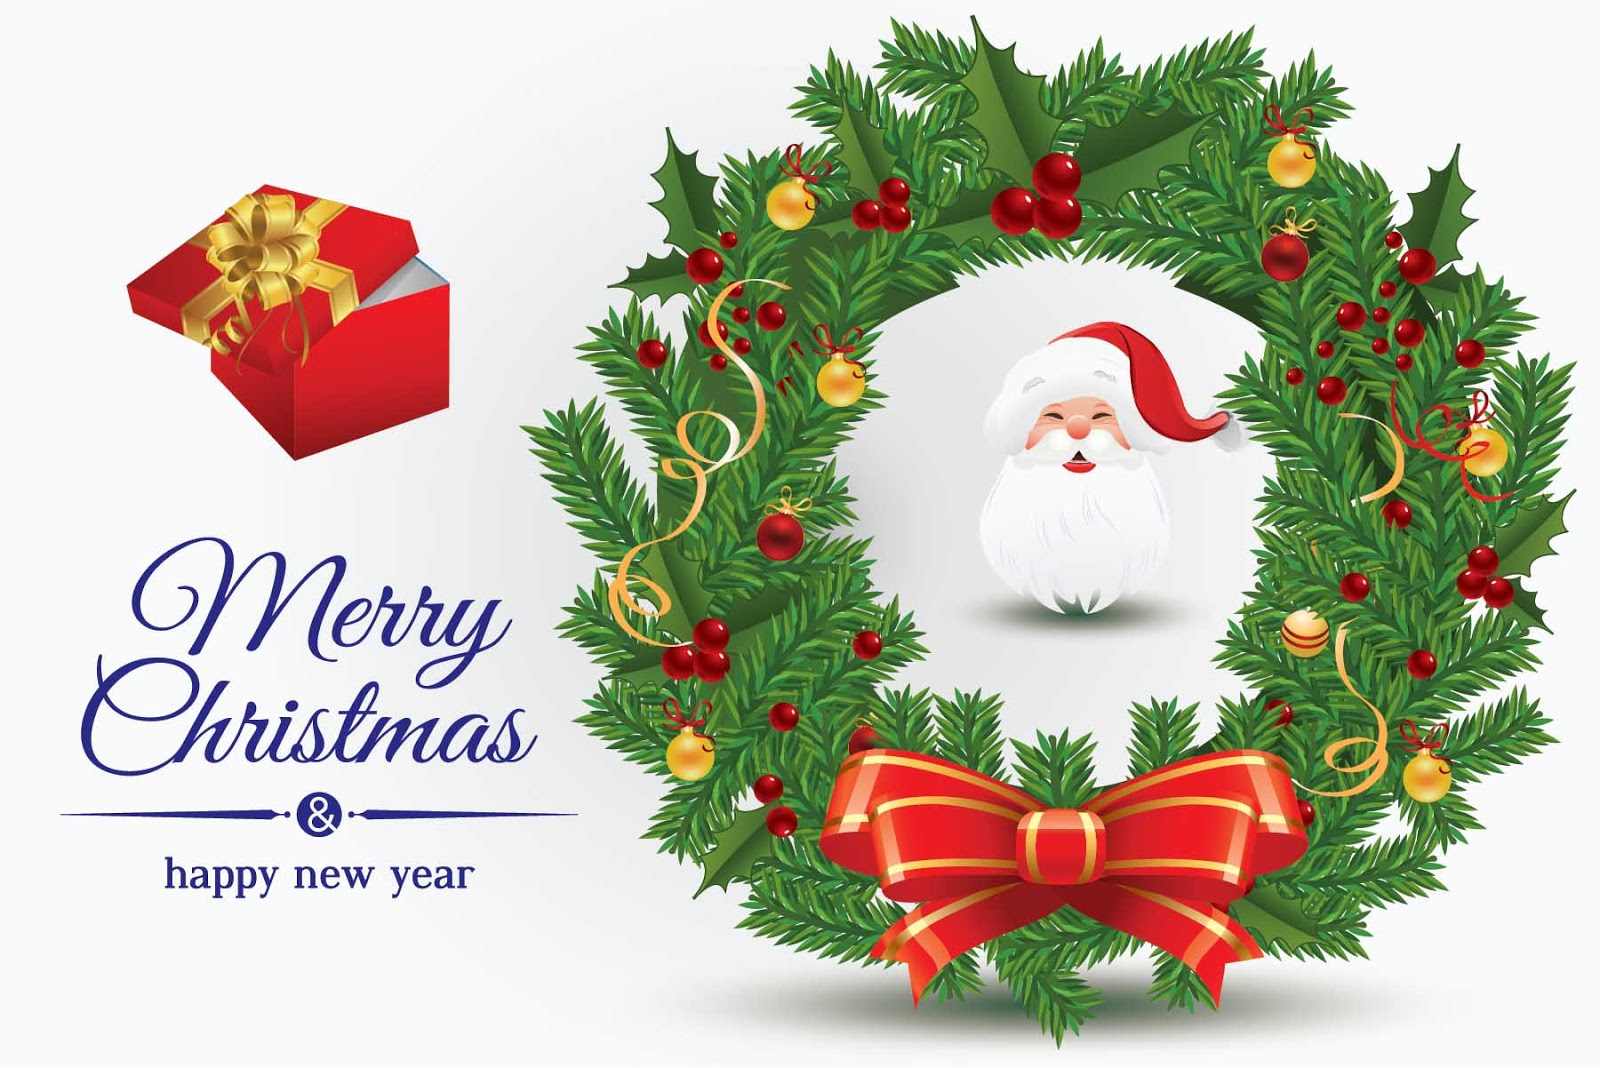 Federal Holiday Christmas 2019.25th December Christmas Meaning And The Glorious History